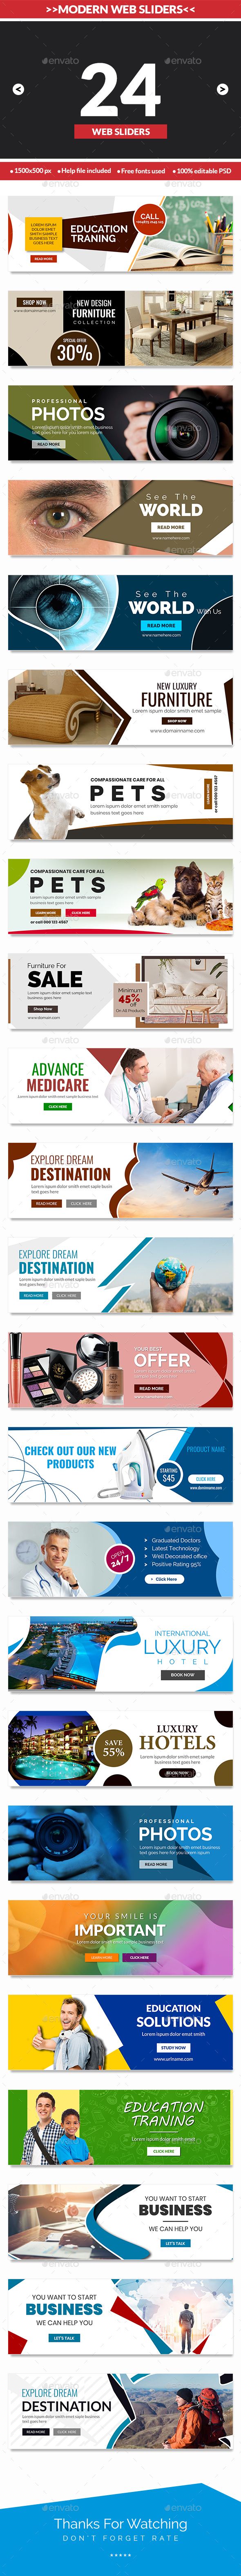 Modern Multipurpose Web Sliders - 24 designs - Sliders & Features Web Elements